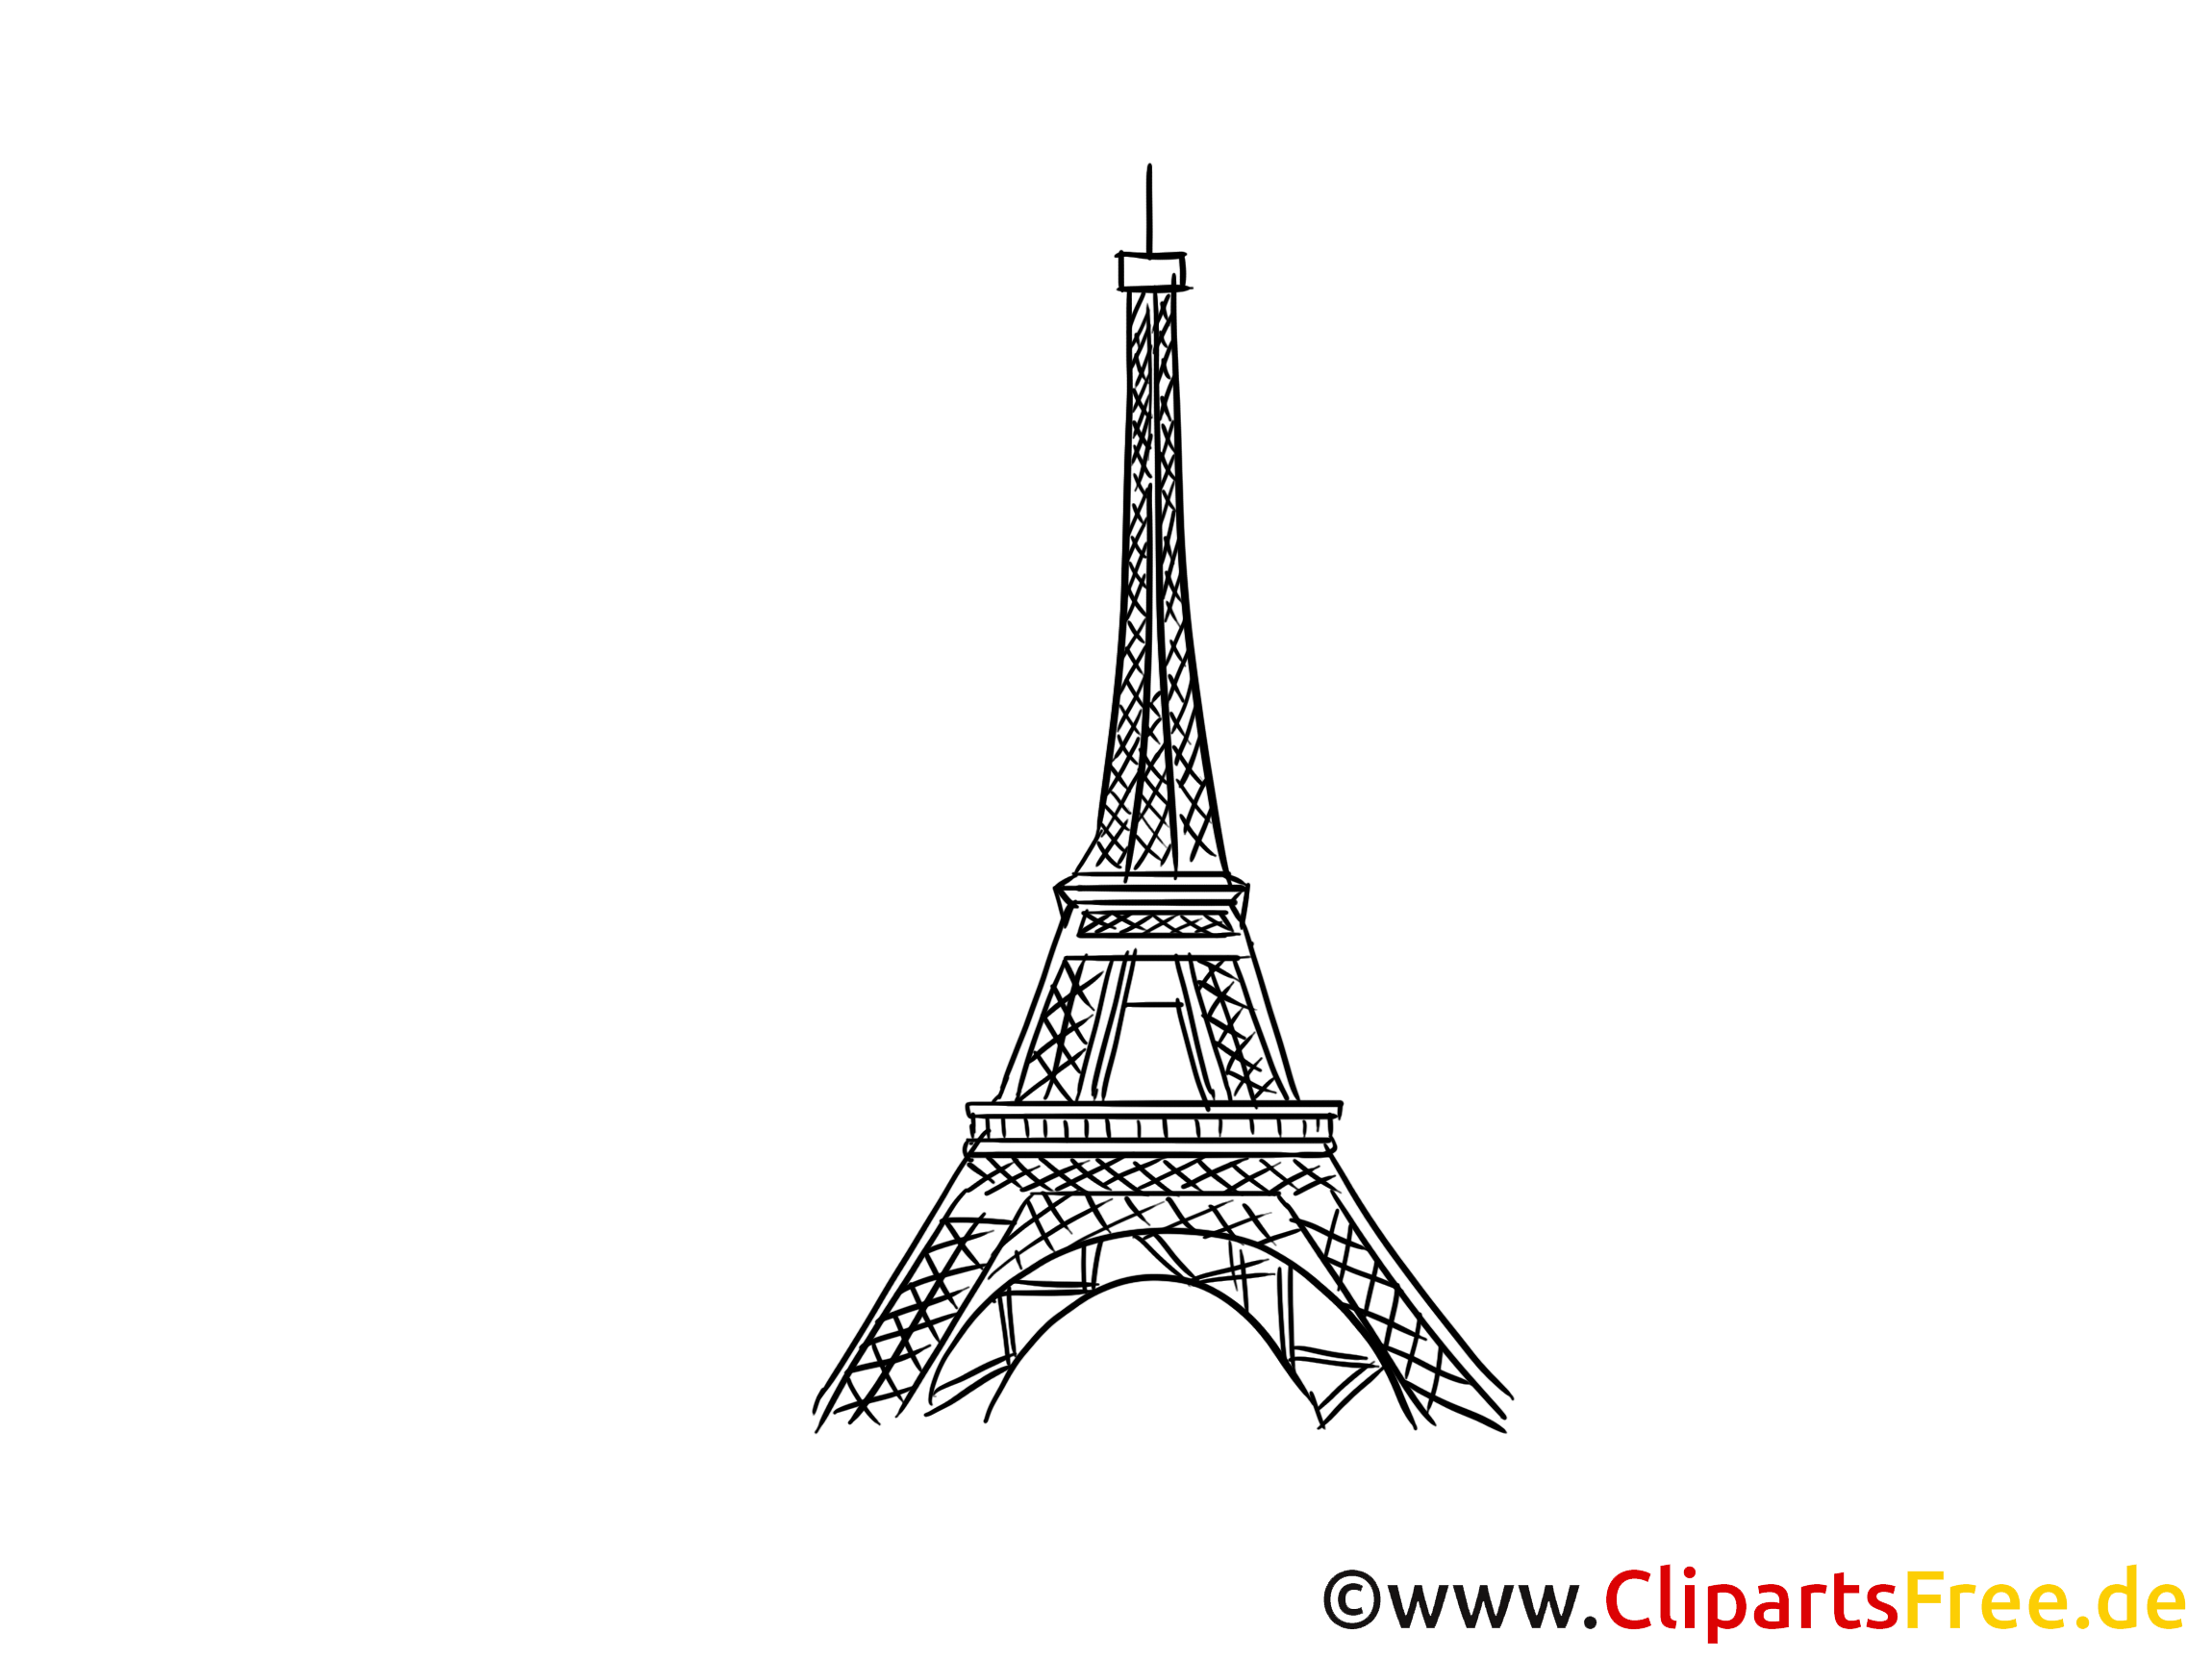 France image à colorier - Tour eiffel cliparts gratuits